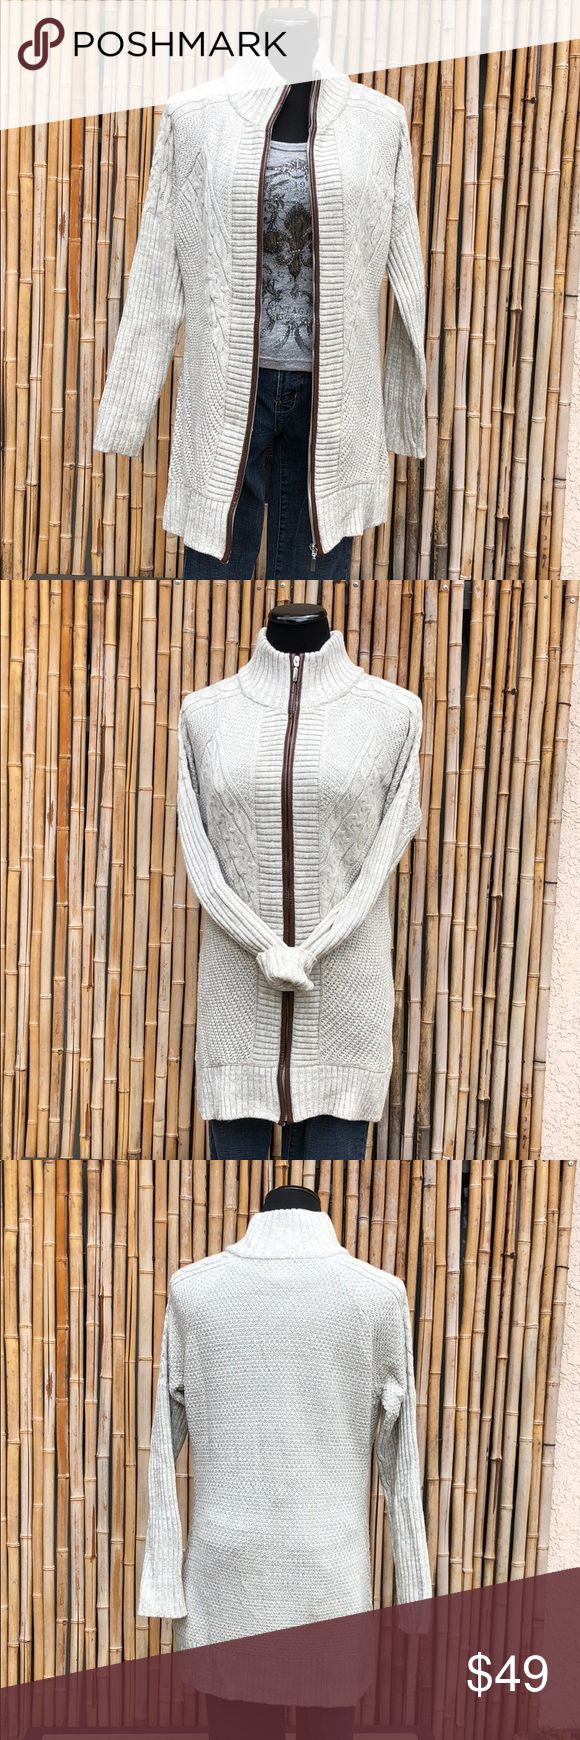 "VENUS Cream Knit Long Sweater Coat Medium VENUS Cream Knit Long Sweater Coat has multi-pattern knit, raglan sleeves, full zipper with faux leather piping.  Label size Medium Chest 21"" Length 29"" Raglan Sleeve from neck 27""  💲Bundle & Save!💲😀 🚫No Trades/No Holds😘  🔘Use OFFER button to negotiate👍🤑 ❓Please Ask ?'s BEFORE you Buy🤔😃 💕Thank you for shopping my closet!💕 VENUS Sweaters"